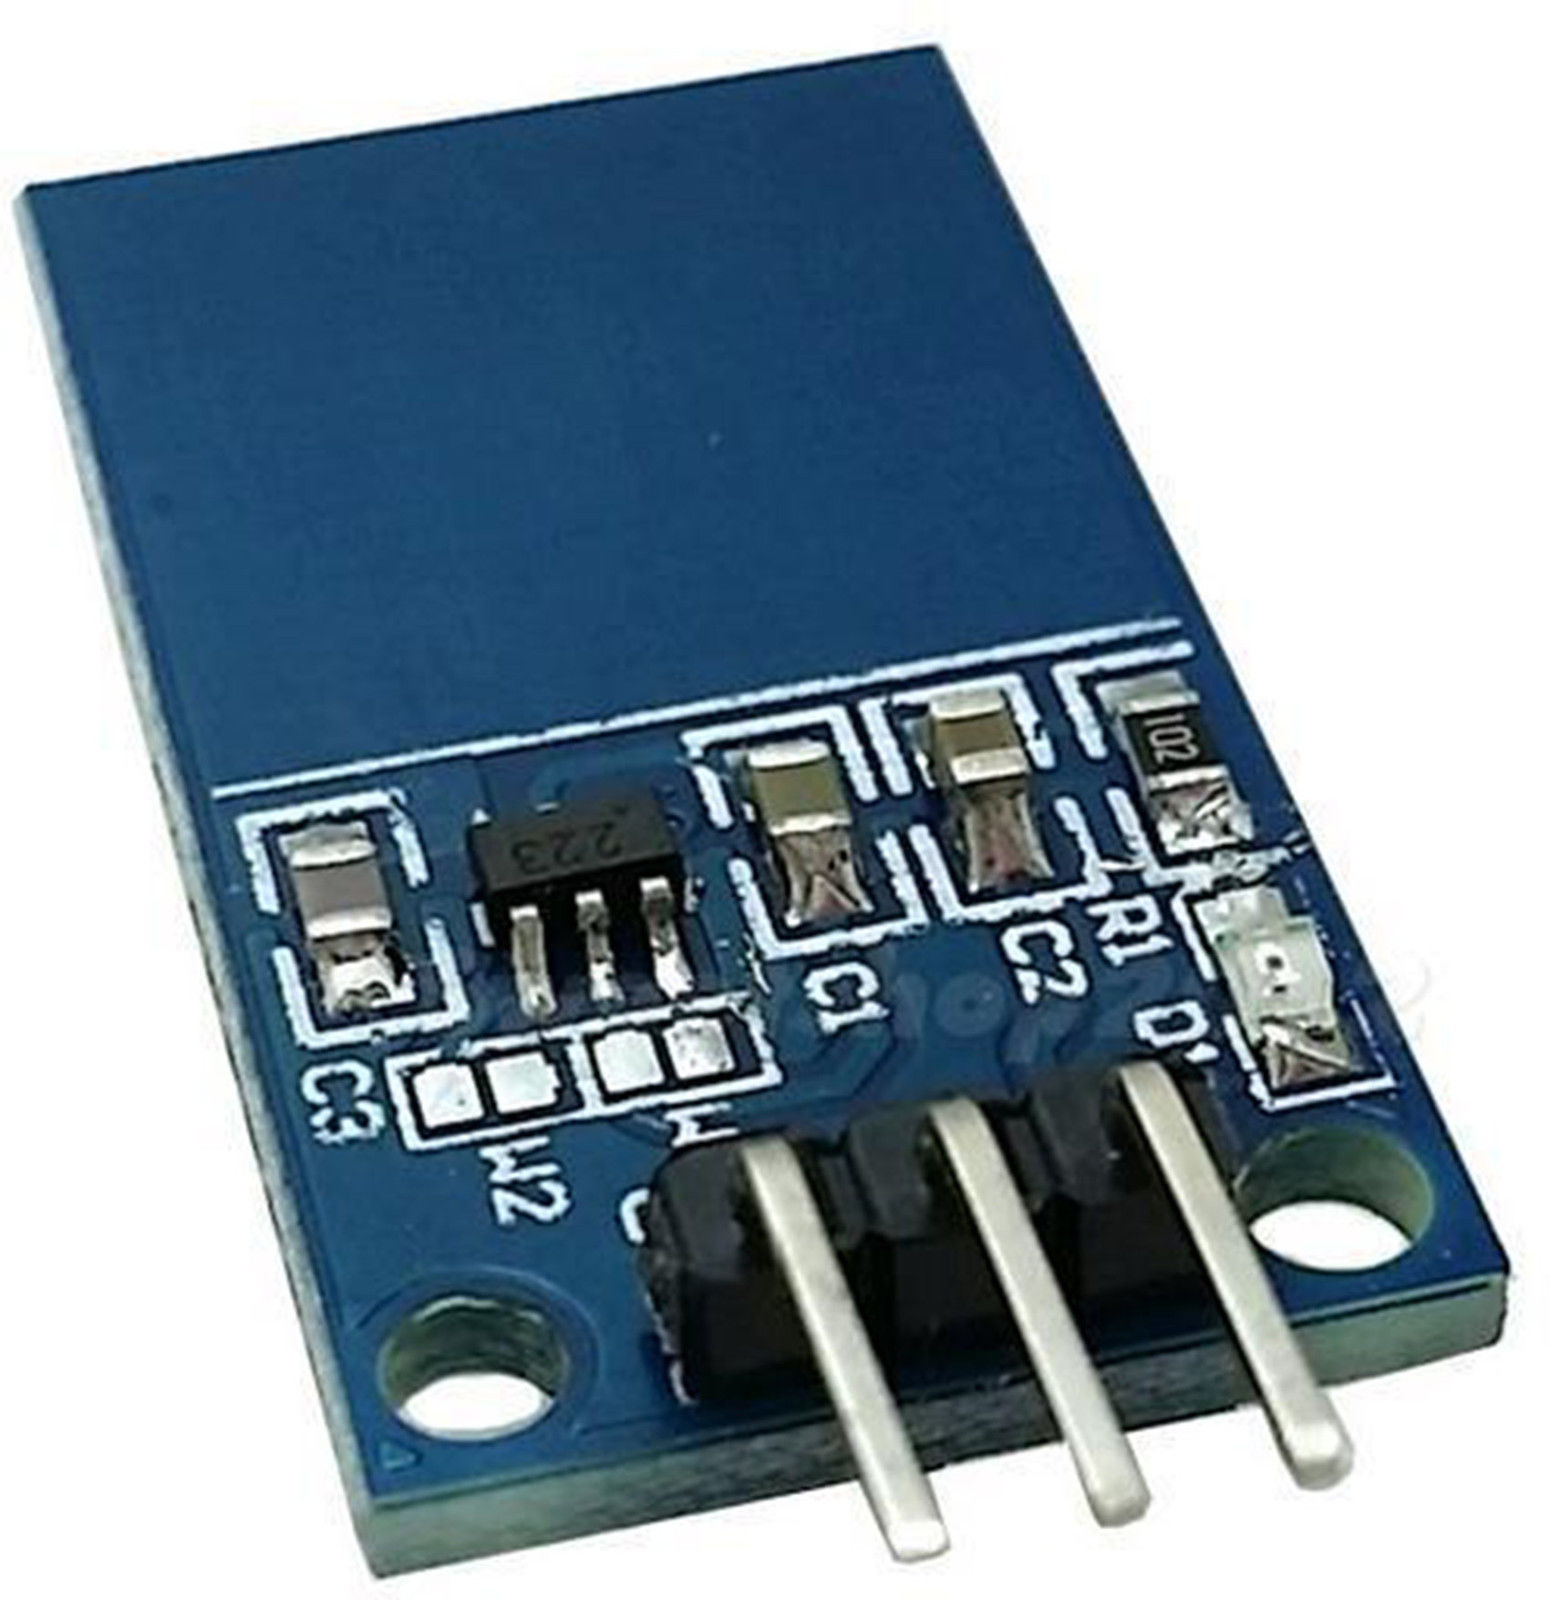 Ttp223 Capacitive Touch Switch All Top Notch Sensor Module Circuit